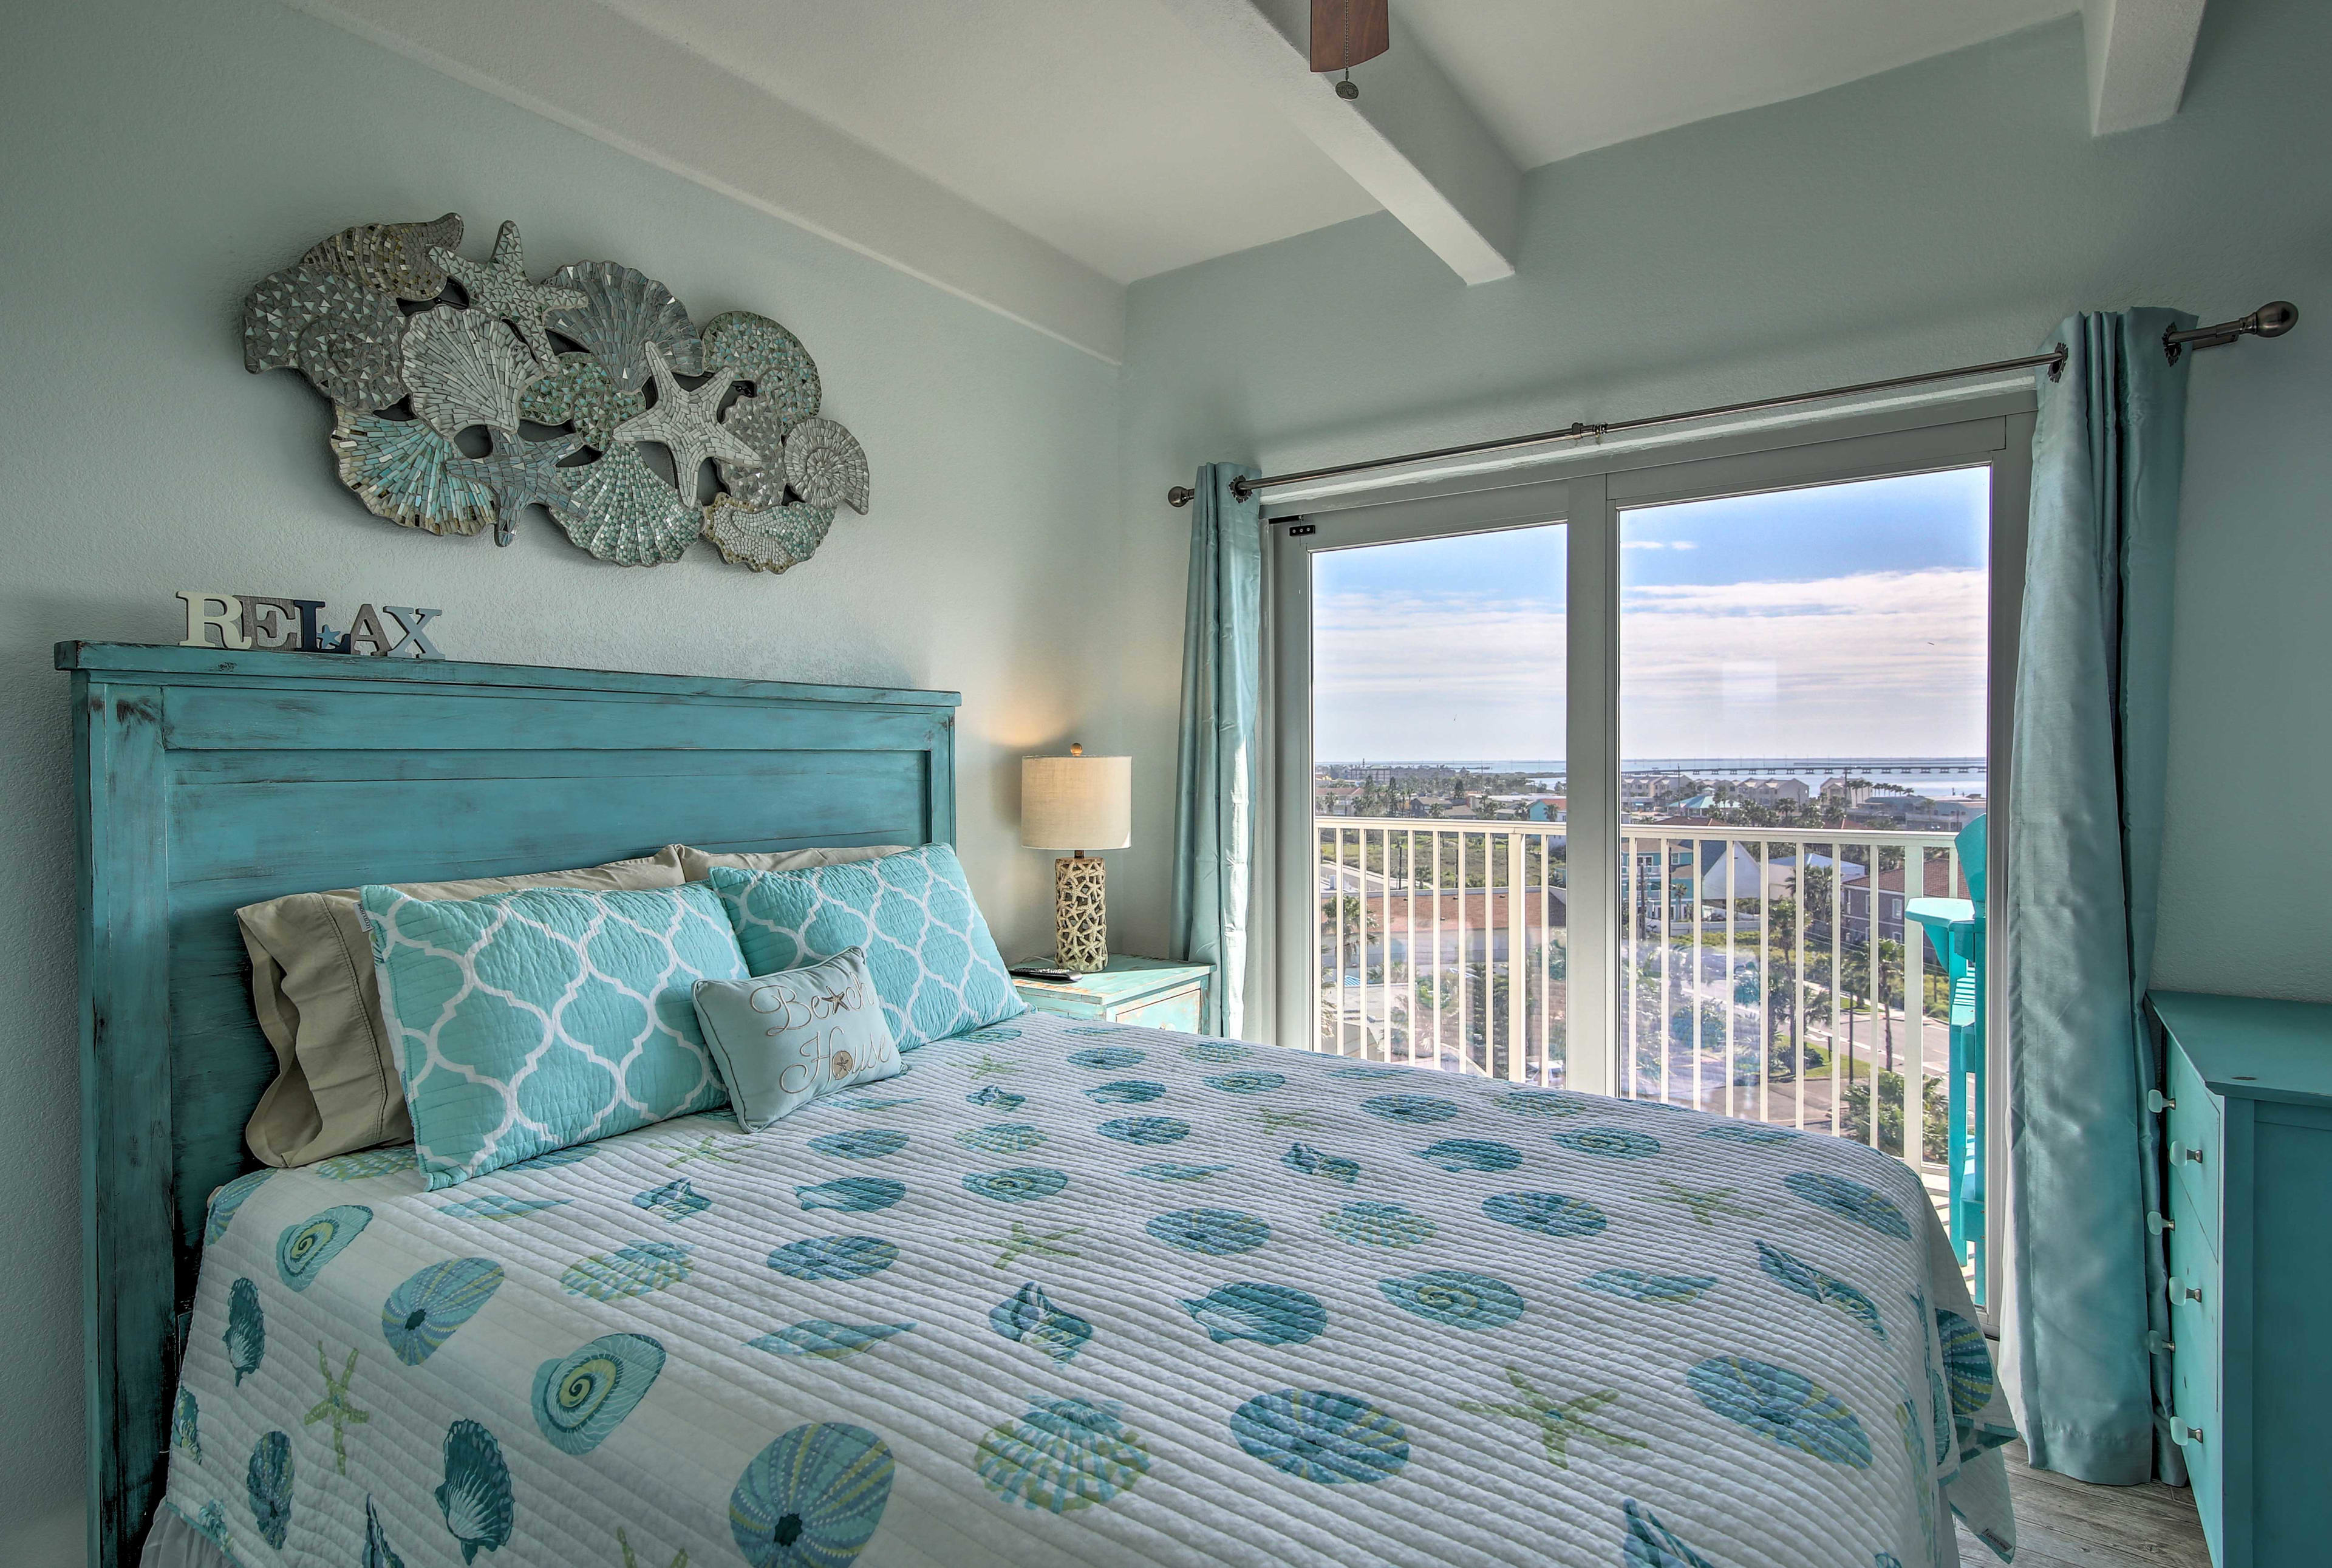 Bedroom 2 | Queen Bed | Linens Provided | Balcony Access